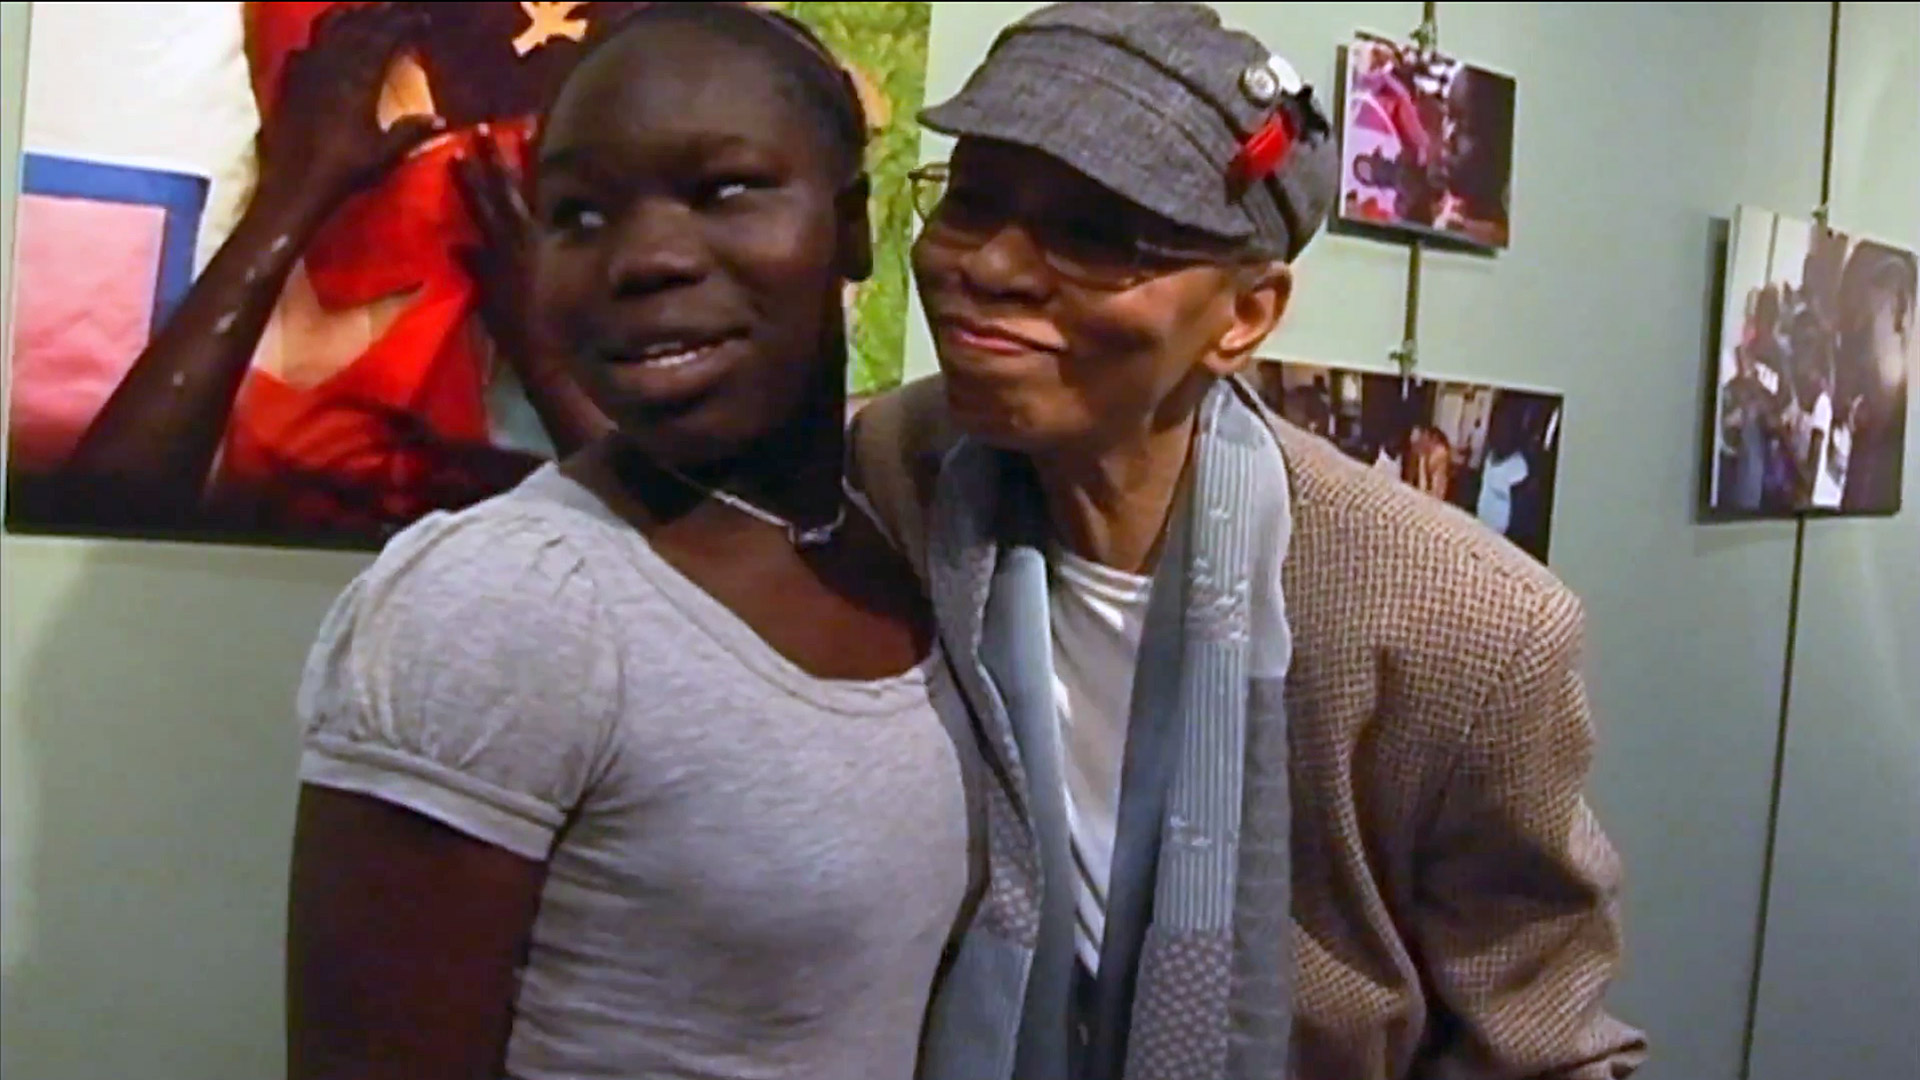 Habiba & Peggie Hartwell at the quilt exhibition From the documentary The Quilted Conscience